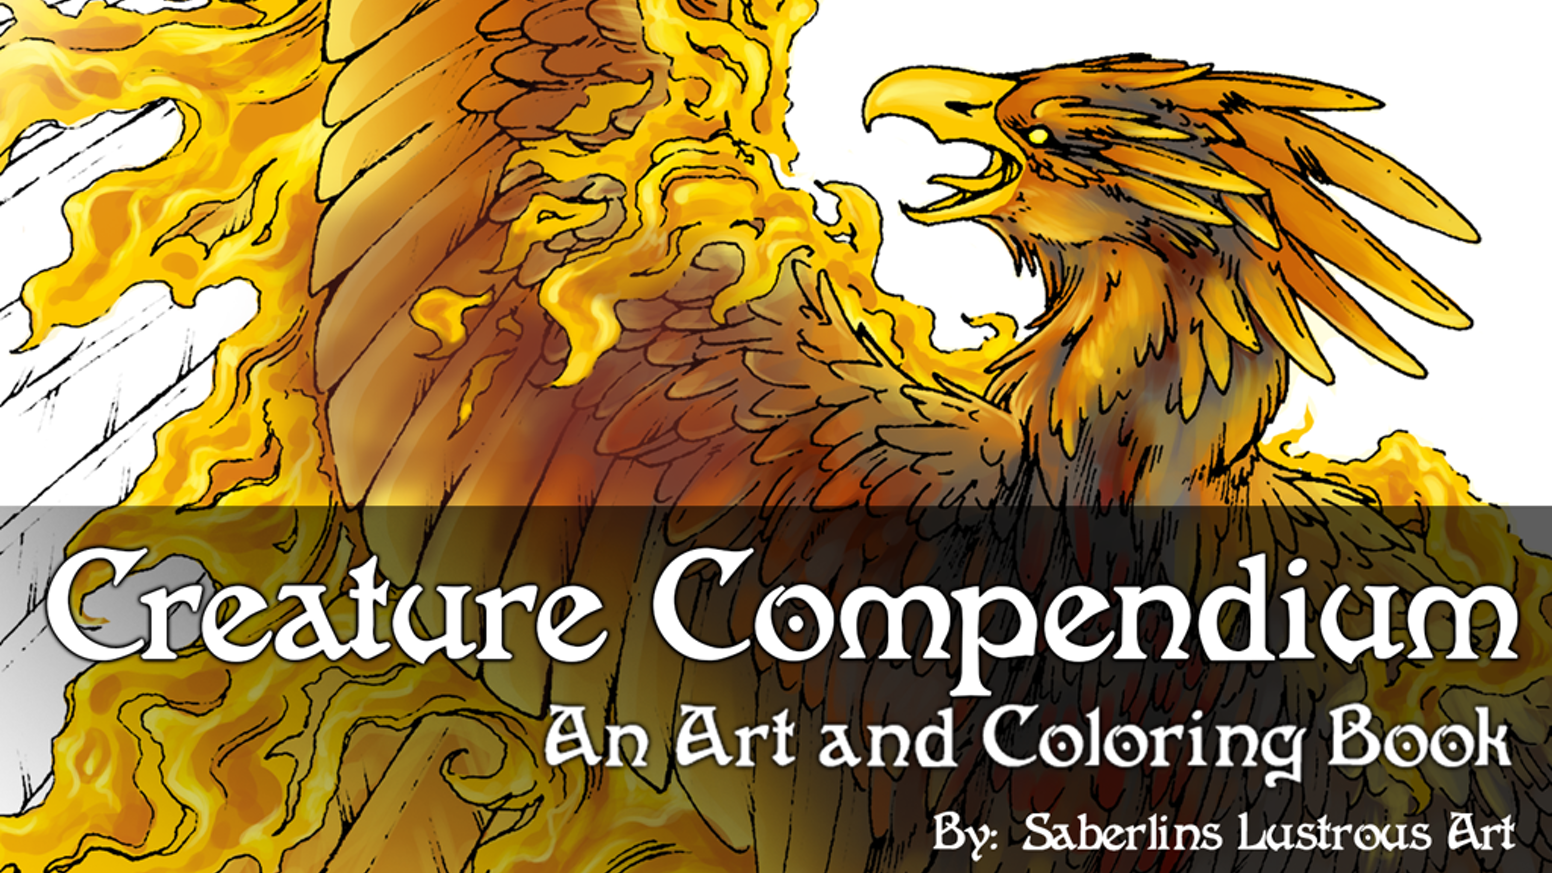 More than your average coloring book, the Creature Compendium will take you into the gorgeously illustrated world of fantasy creatures.